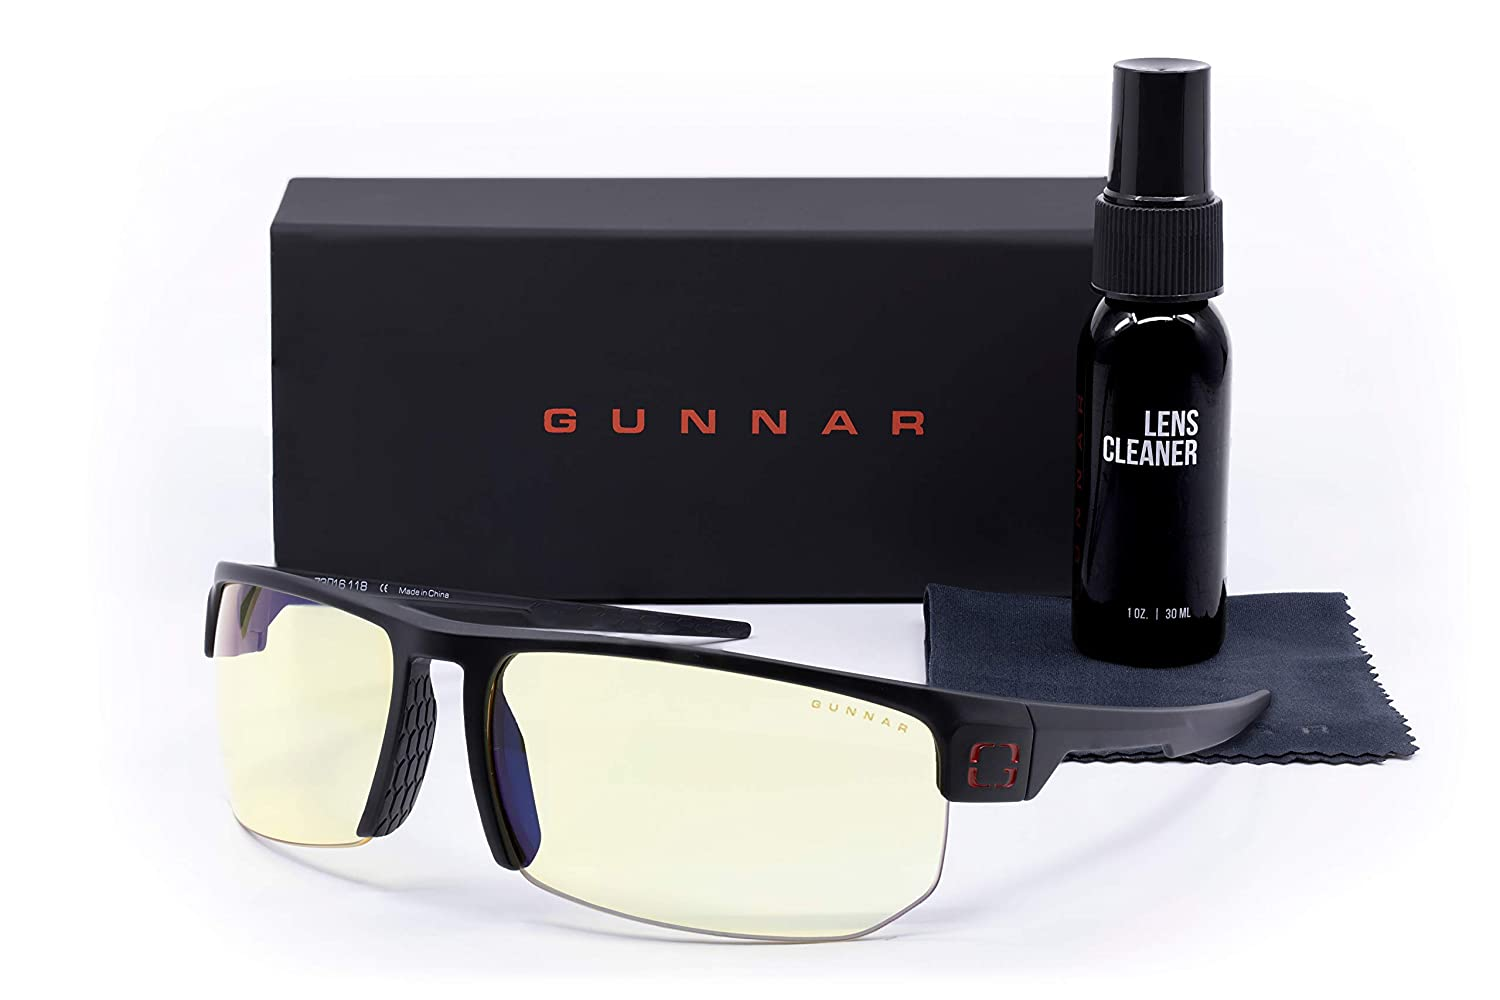 GUNNAR Gaming Popularity Glasses Torpedo Bundle Cleaner Includes Case Max 43% OFF wit